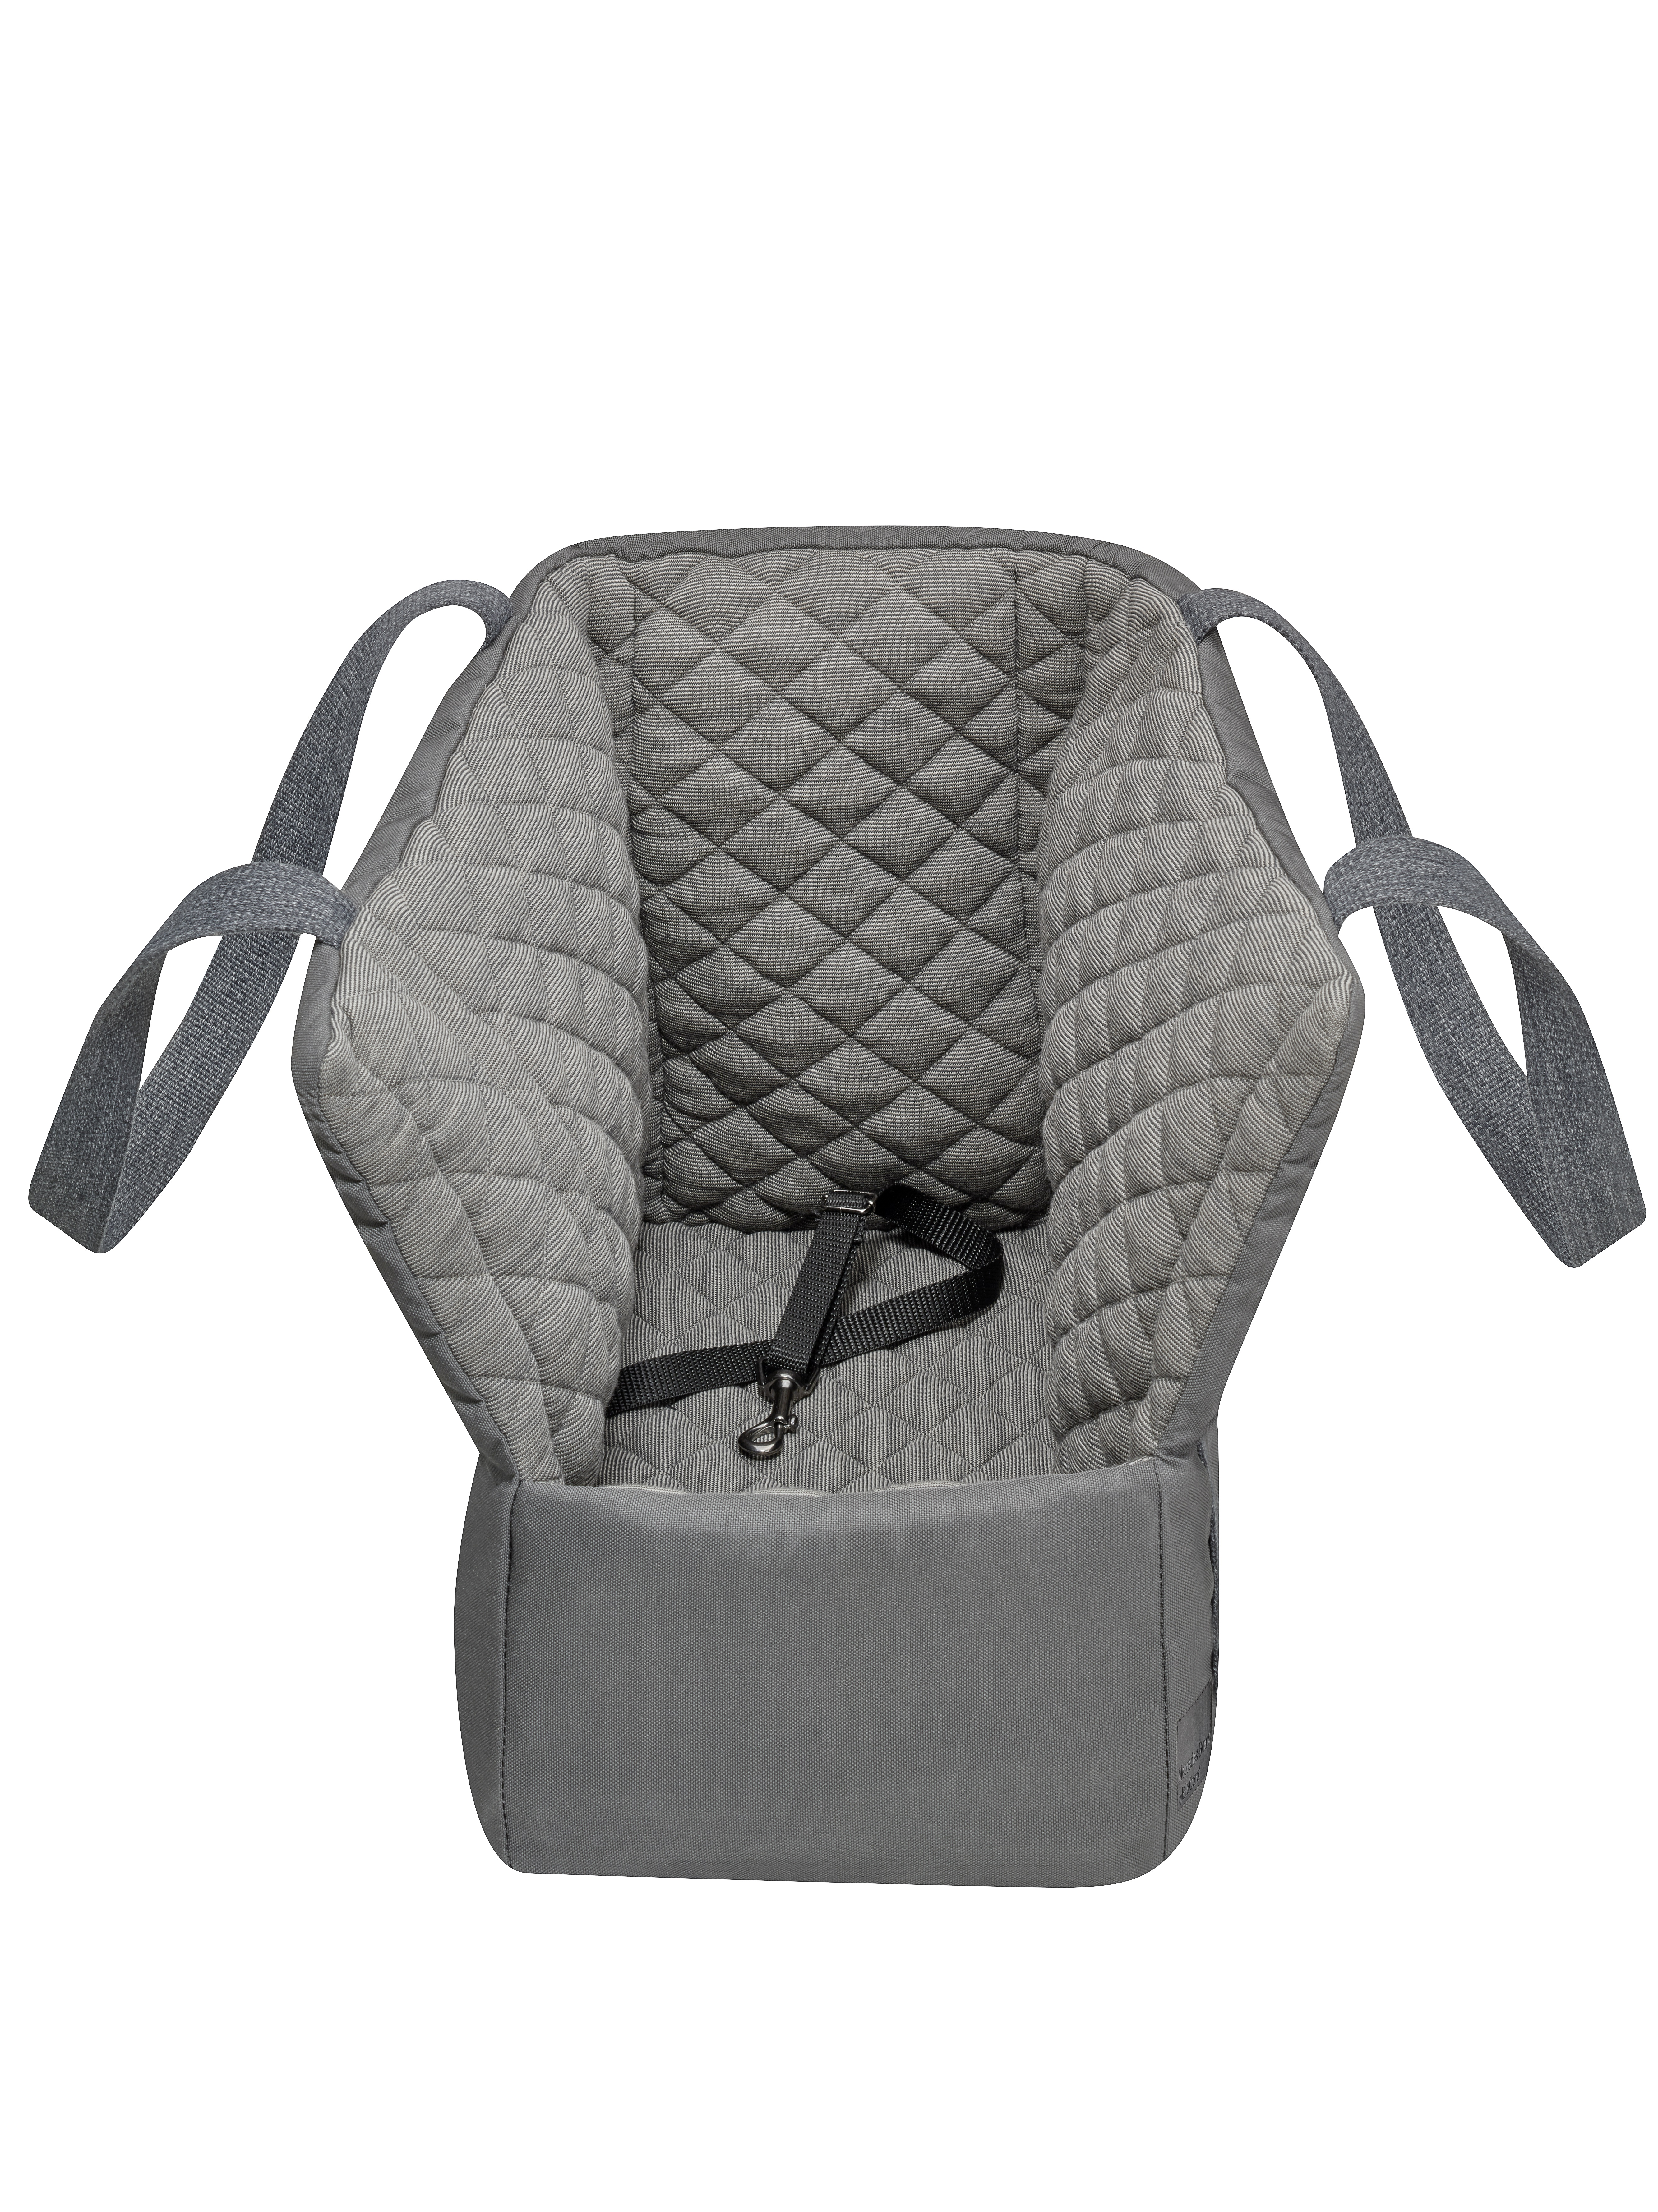 Sac pour chien, by MiaCara®, Taille Small